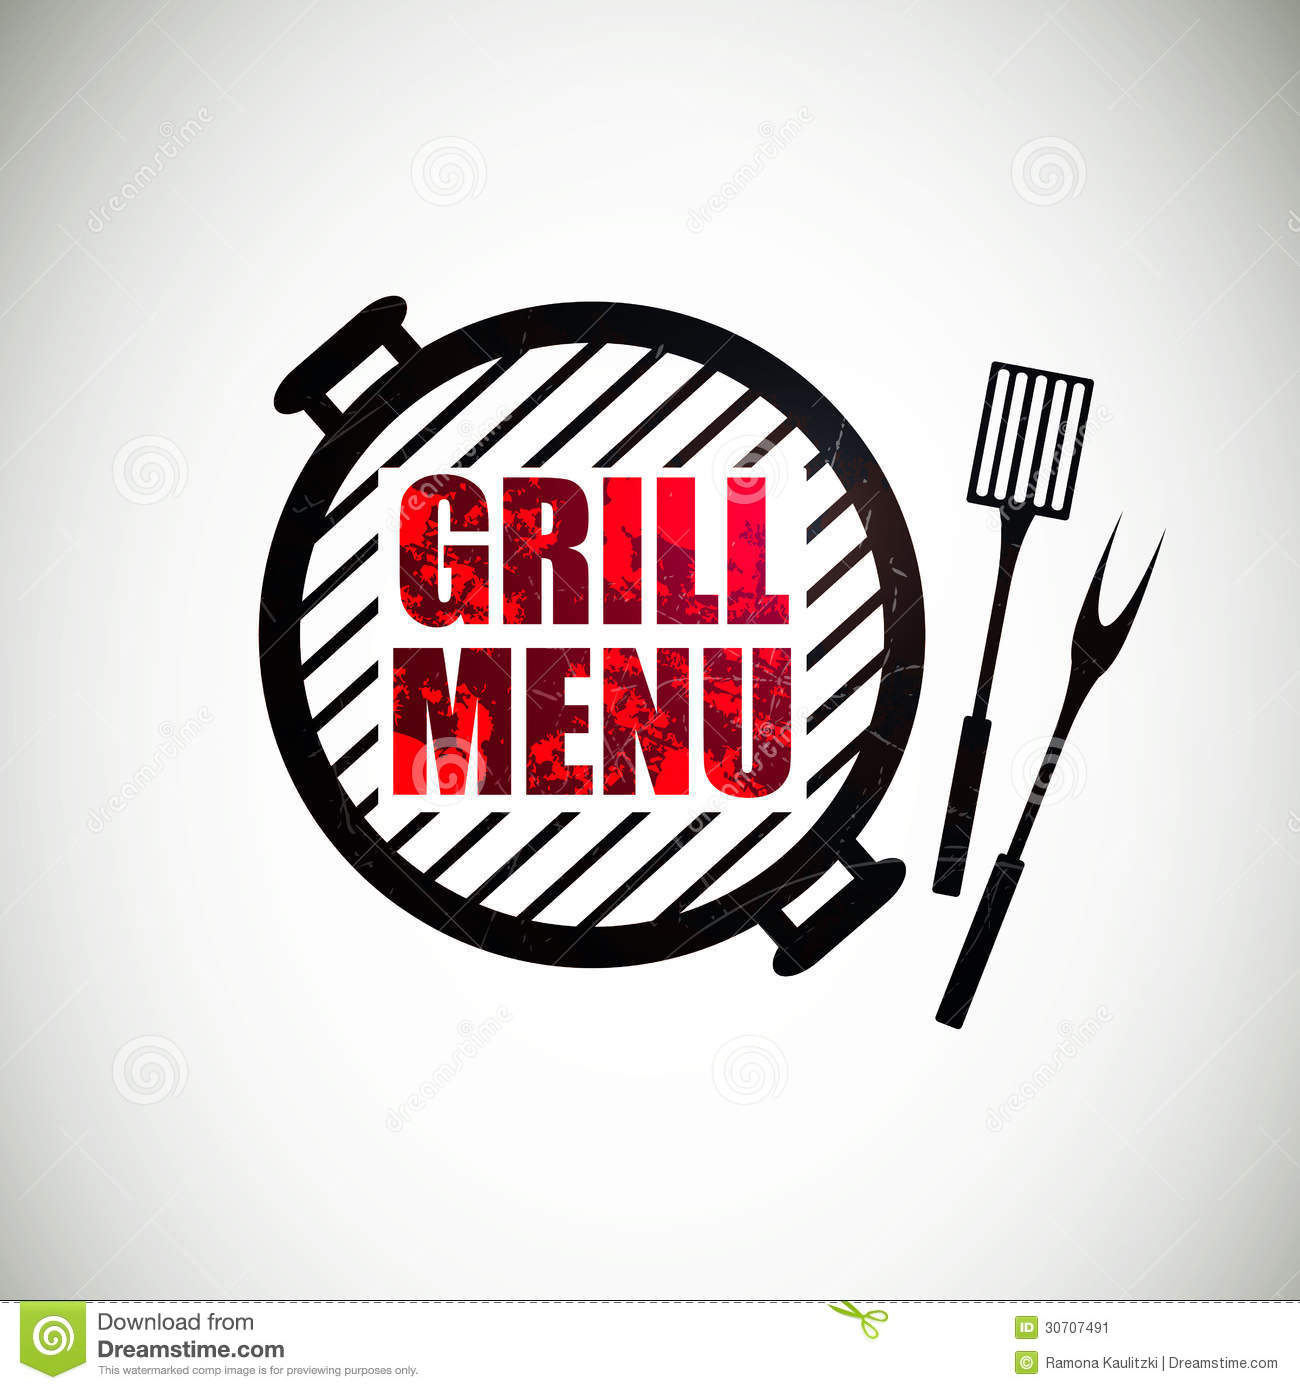 grill menu design stock illustration illustration of icon 30707491